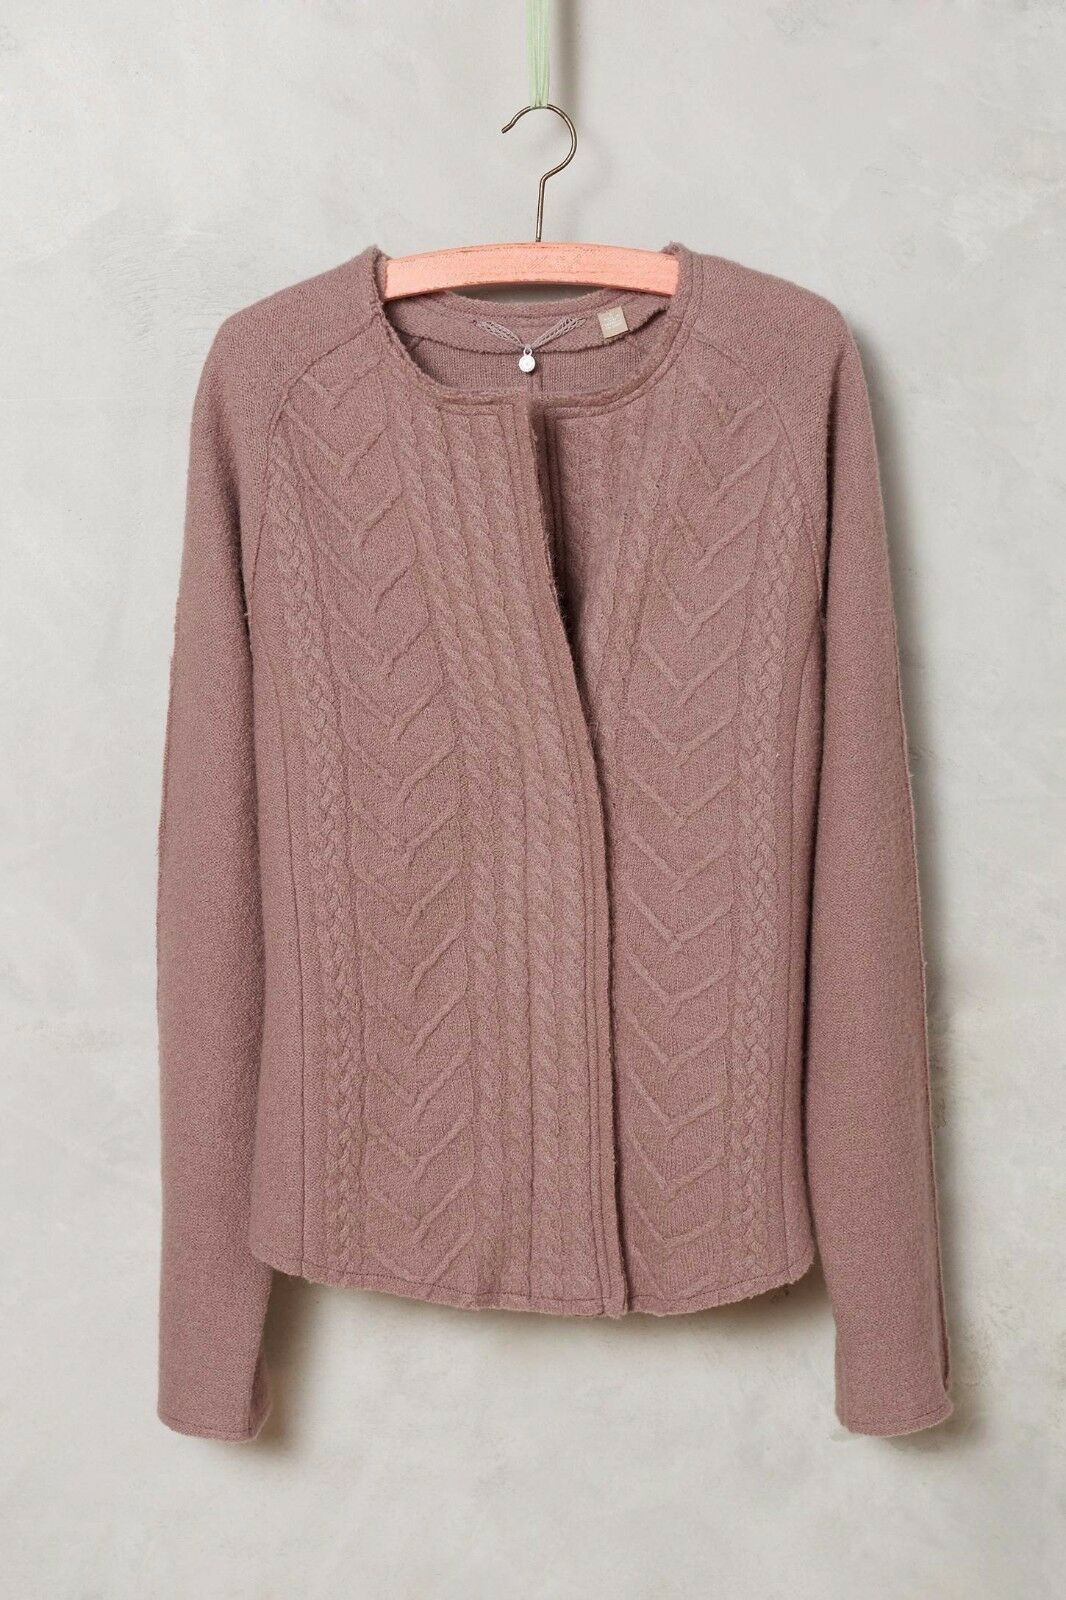 NWT ANTHROPOLOGIE CABLEKNIT BOILED WOOL BLAZER SWEATER by KNITTED & KNOTTED XS